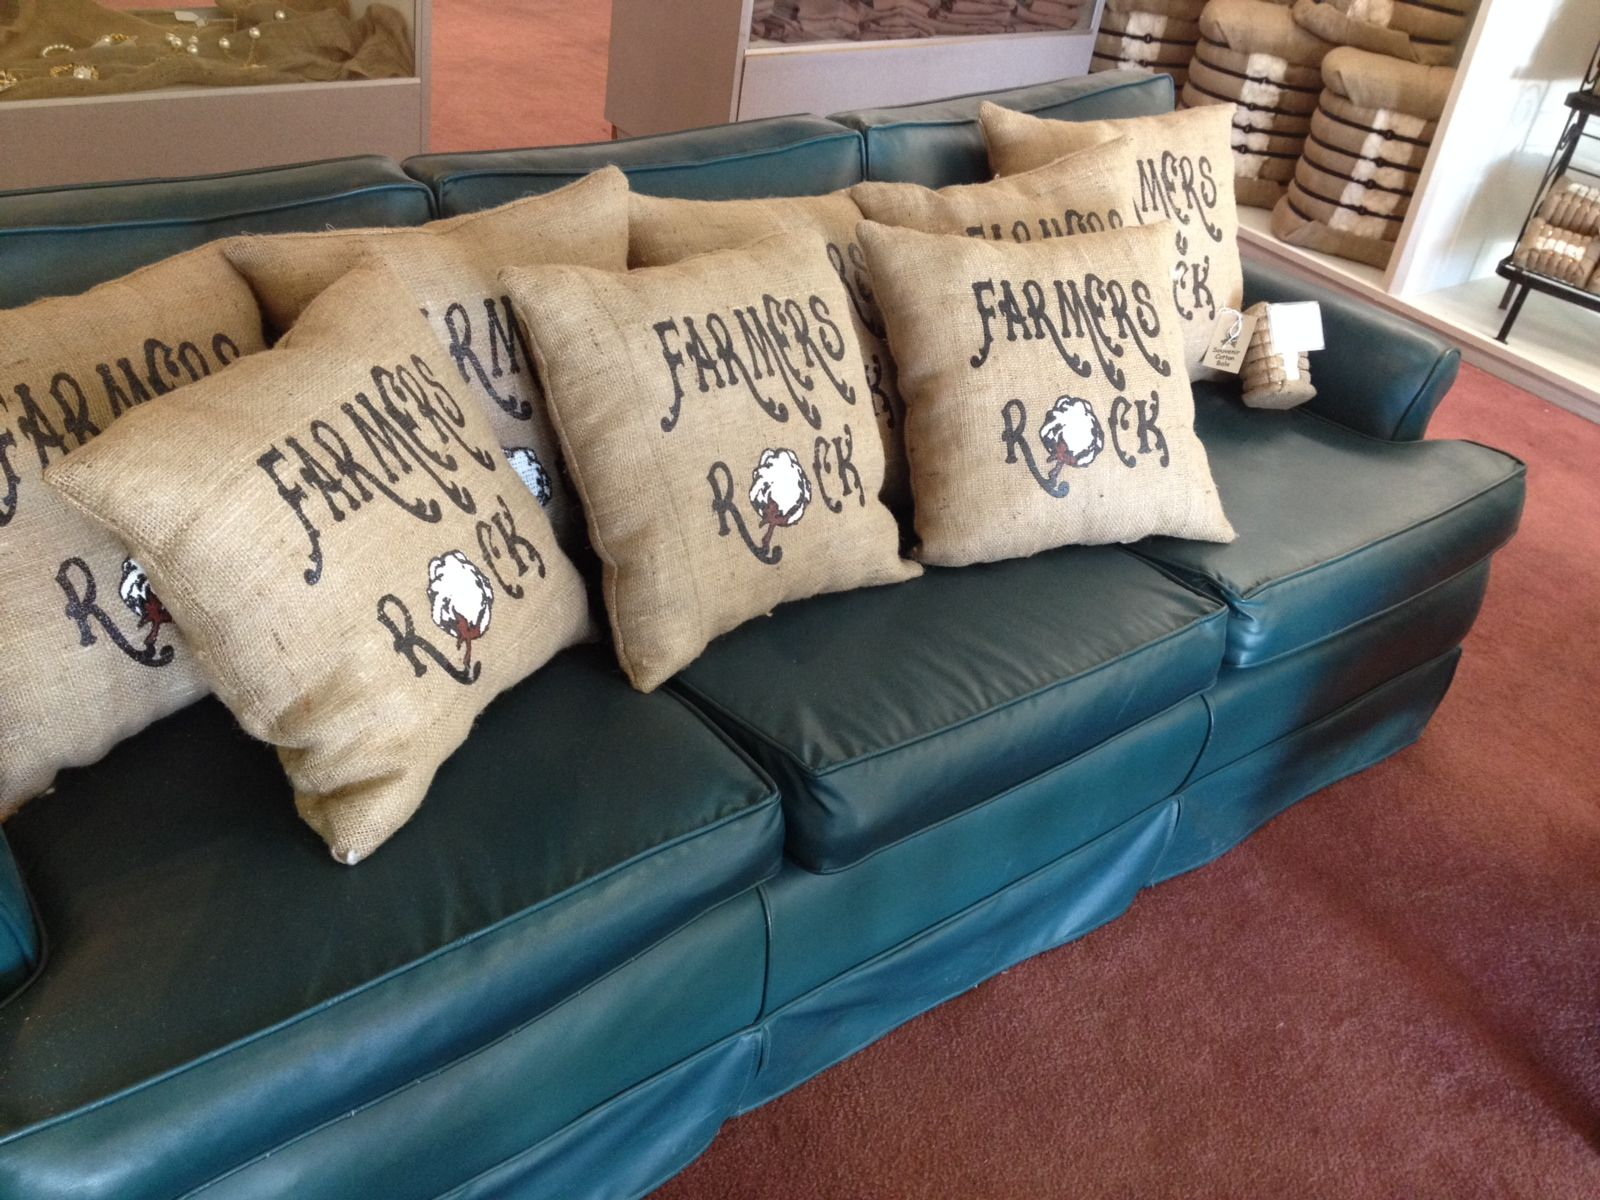 Handmade Farmers Rock burlap pillows stuffed with Mississippi Delta Cotton!